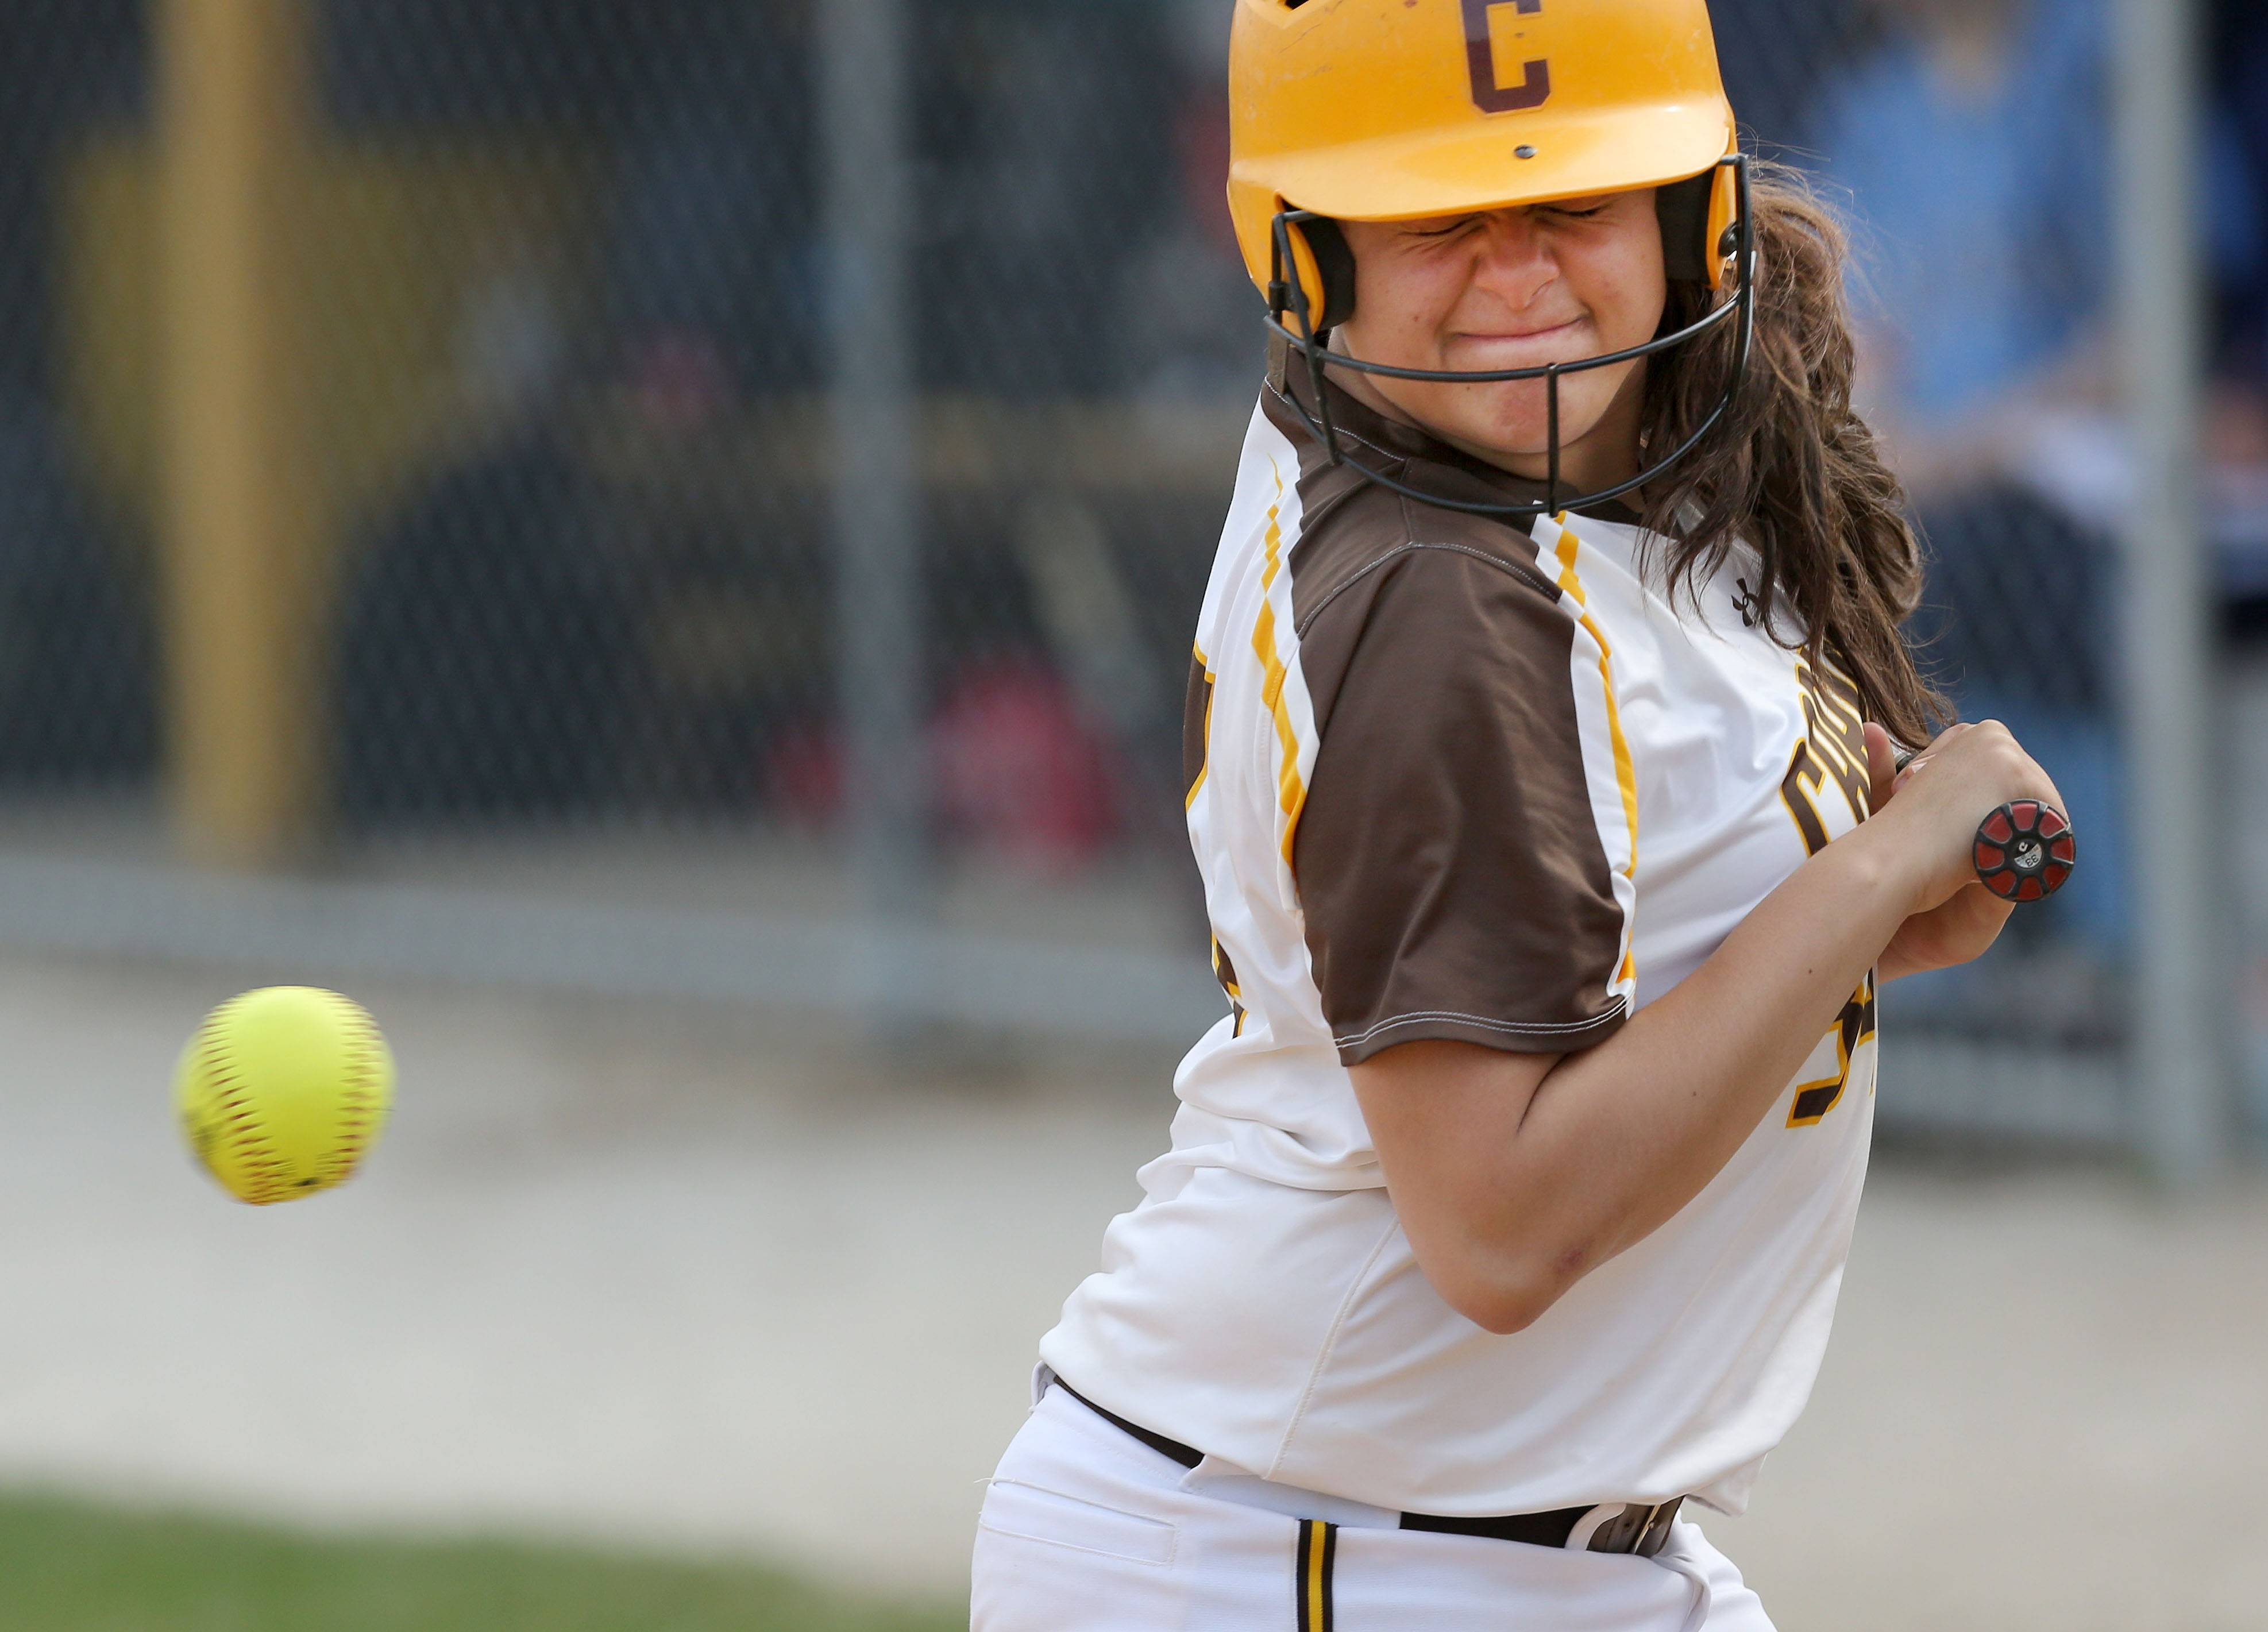 Carmel's Dani DeLozier gets hit by a pitch during their game against Nazareth Wednesday at Carmel Catholic High School.